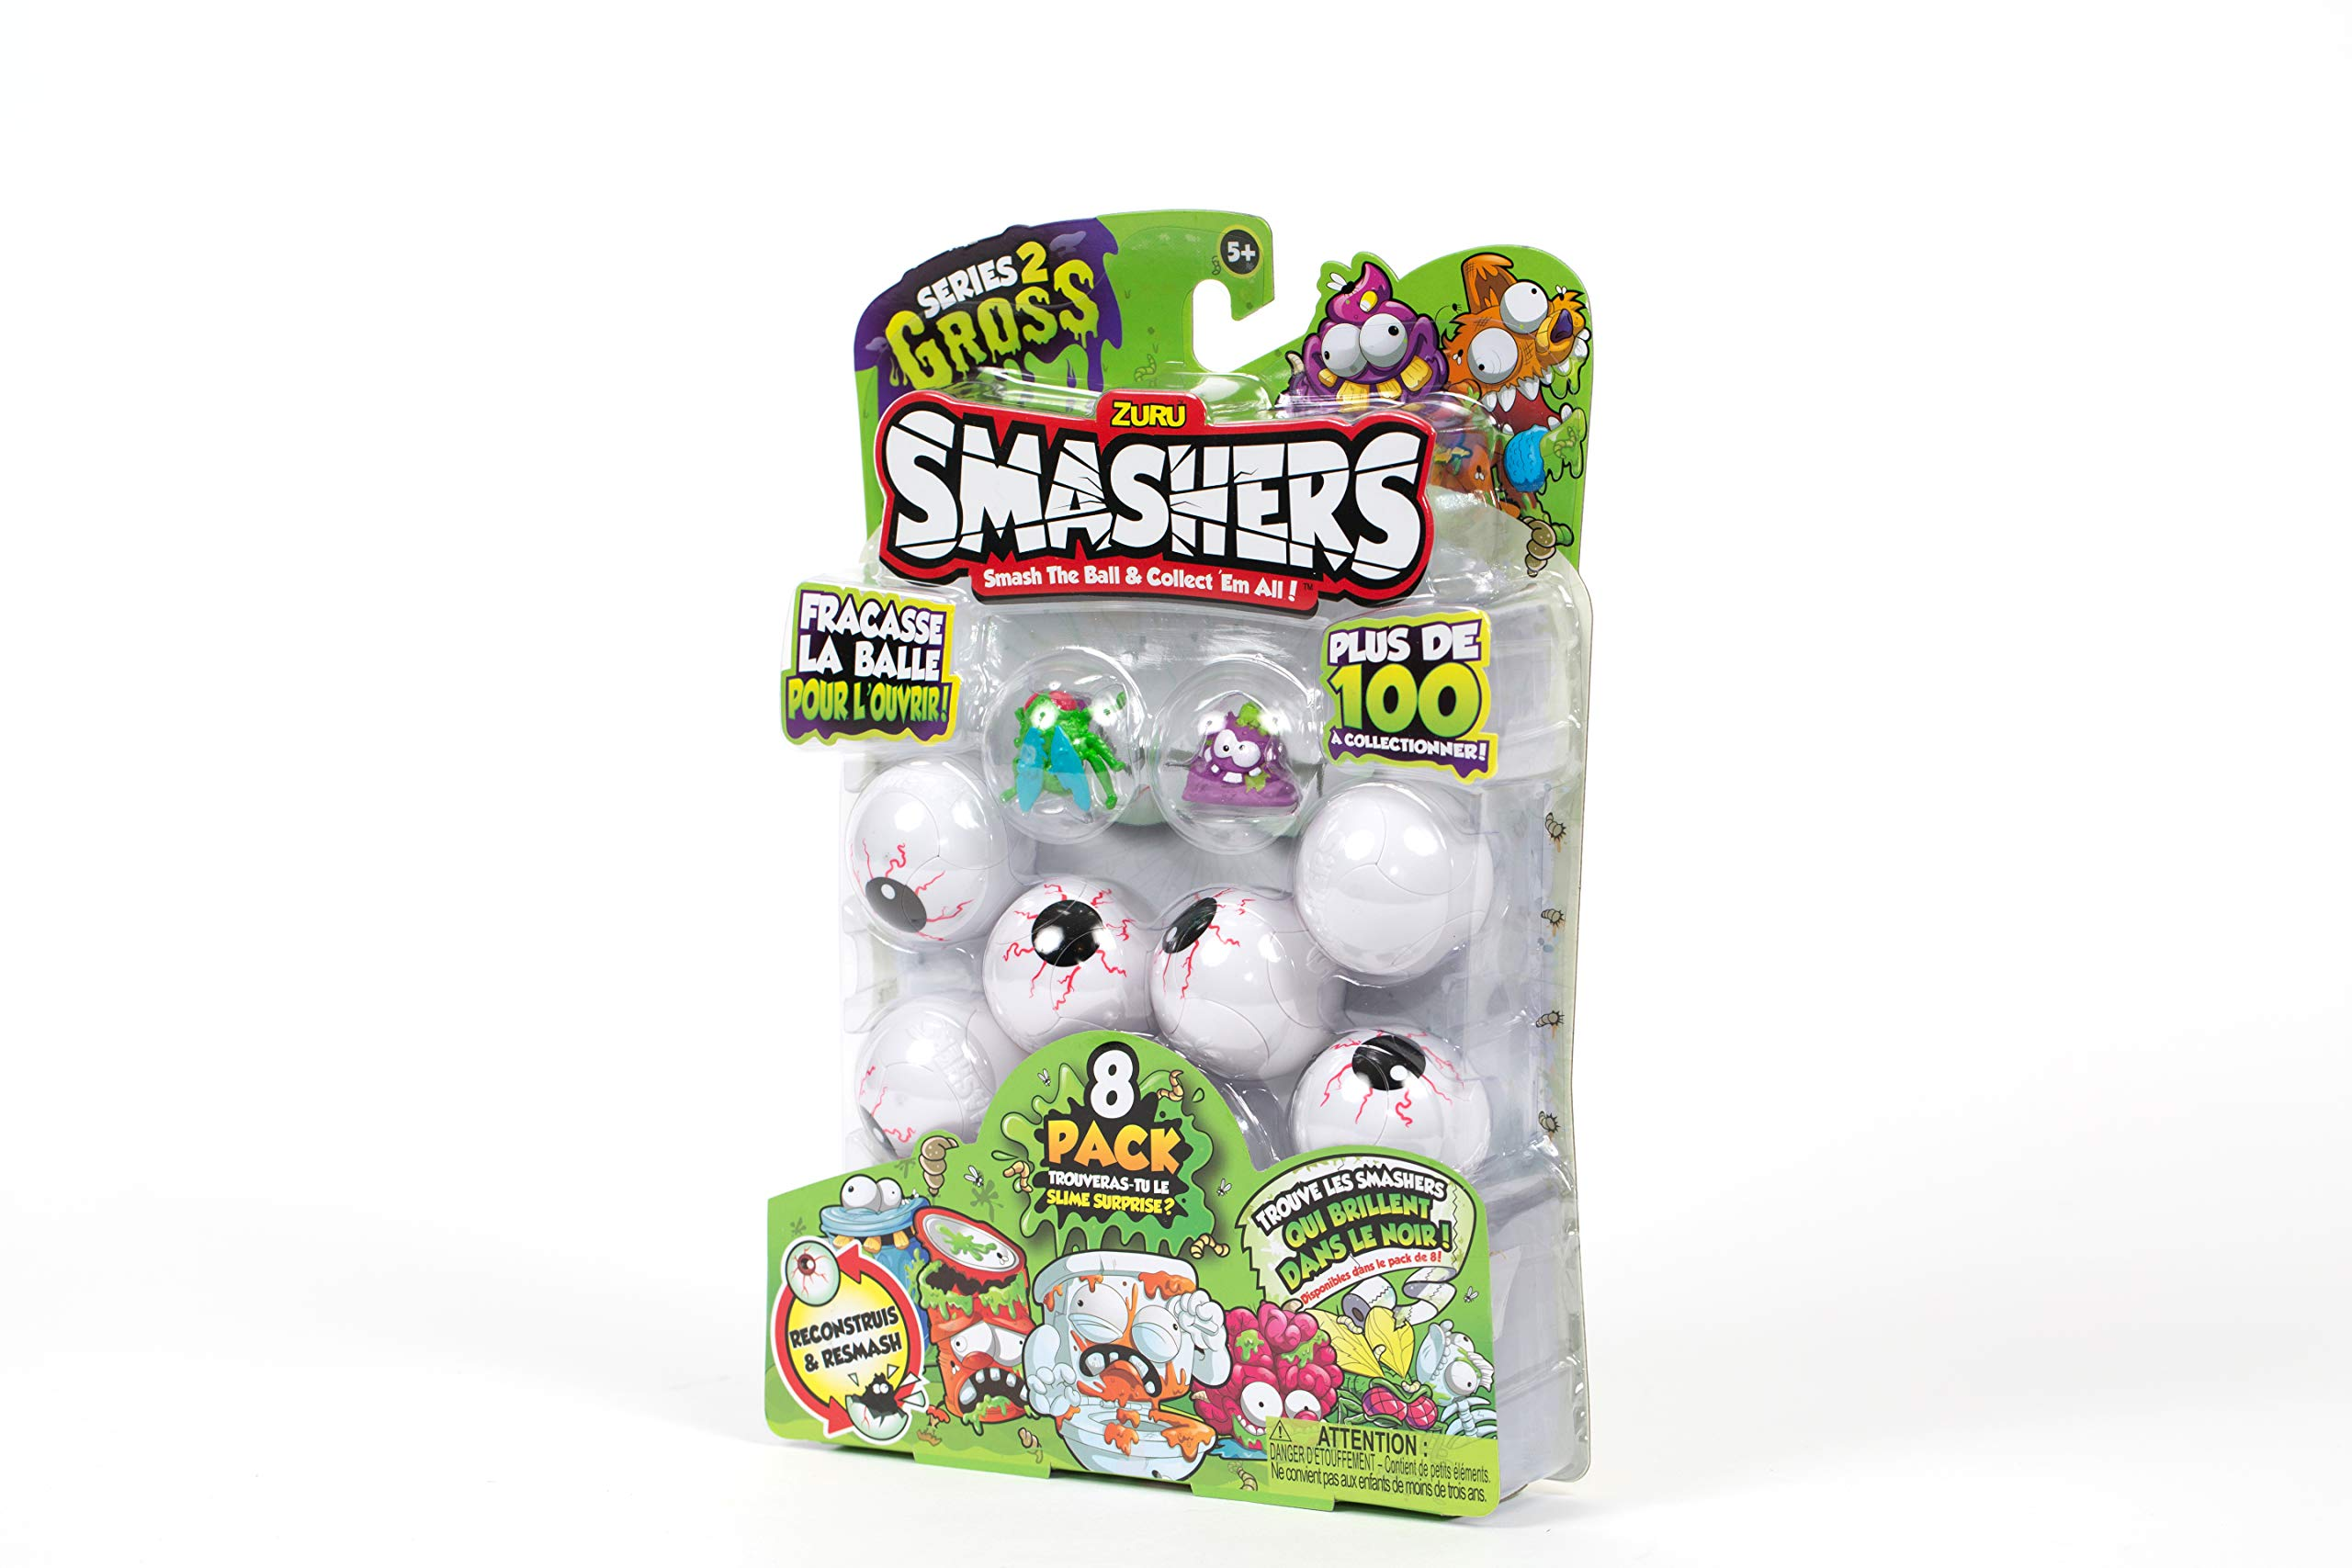 Smashers Smash Ball Collectibles Series 2 Gross by ZURU (8 Pack)